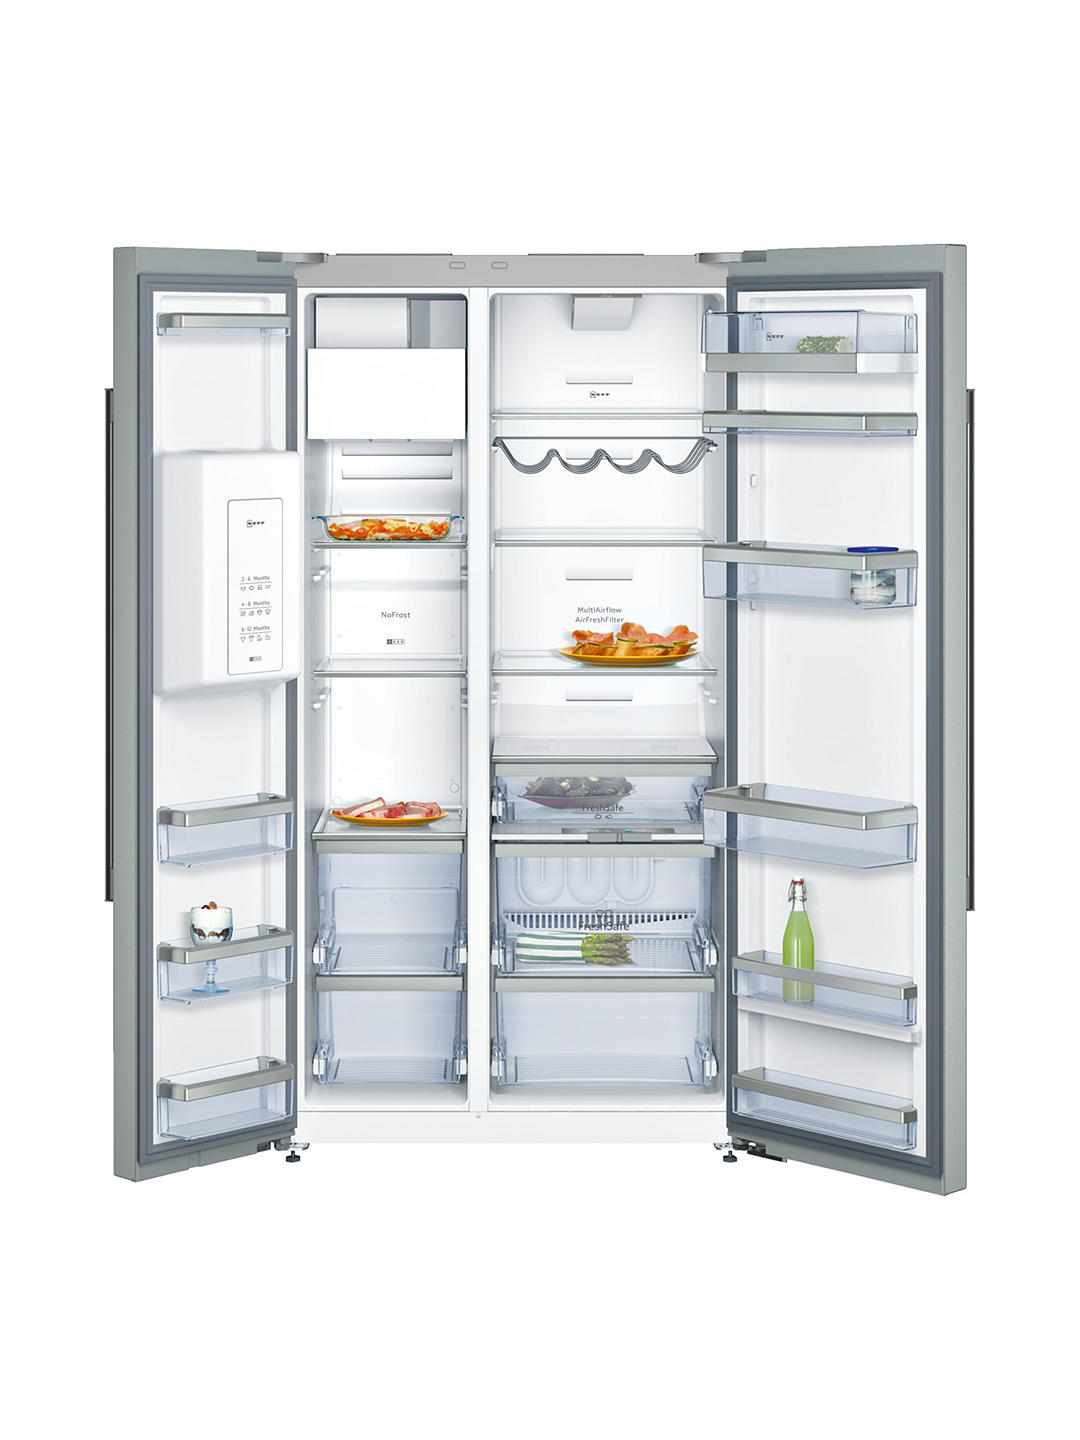 Buy Neff KA3923I20G American-Style Freestanding 70/30 Fridge Freezer, A+ Energy Rating, 90cm Wide, Stainless Steel Online at johnlewis.com